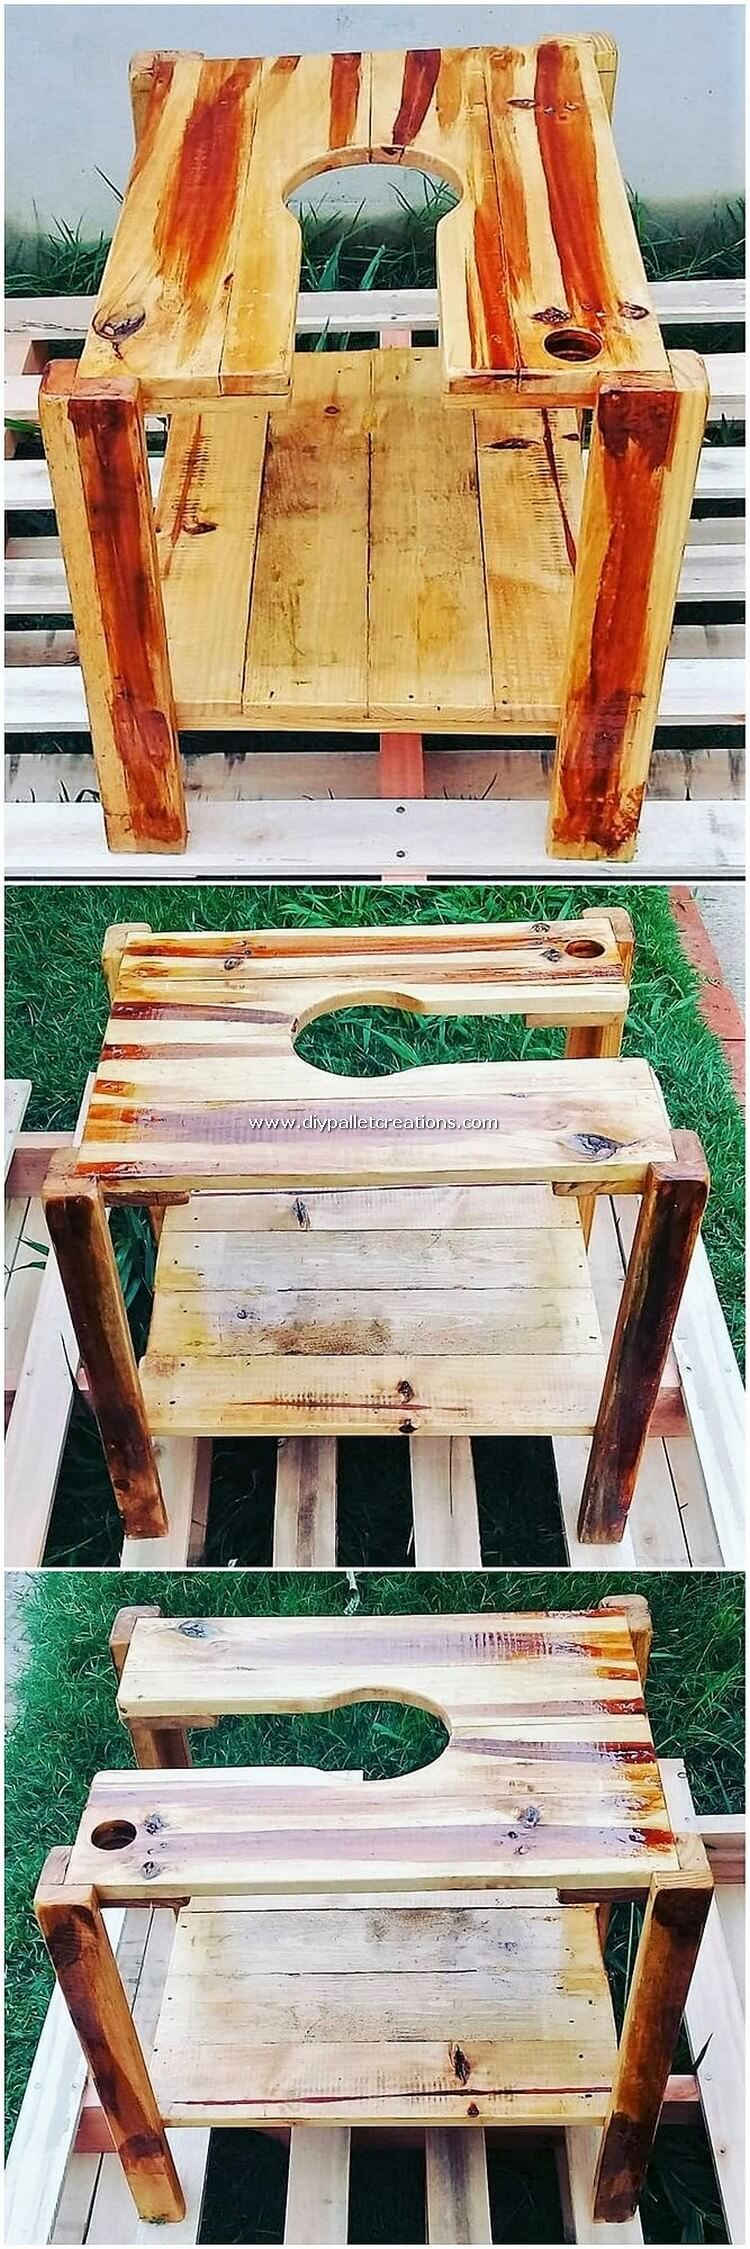 surprising diy ideas with old wood pallets with images on extraordinary ideas for old used dumped pallets wood id=23467